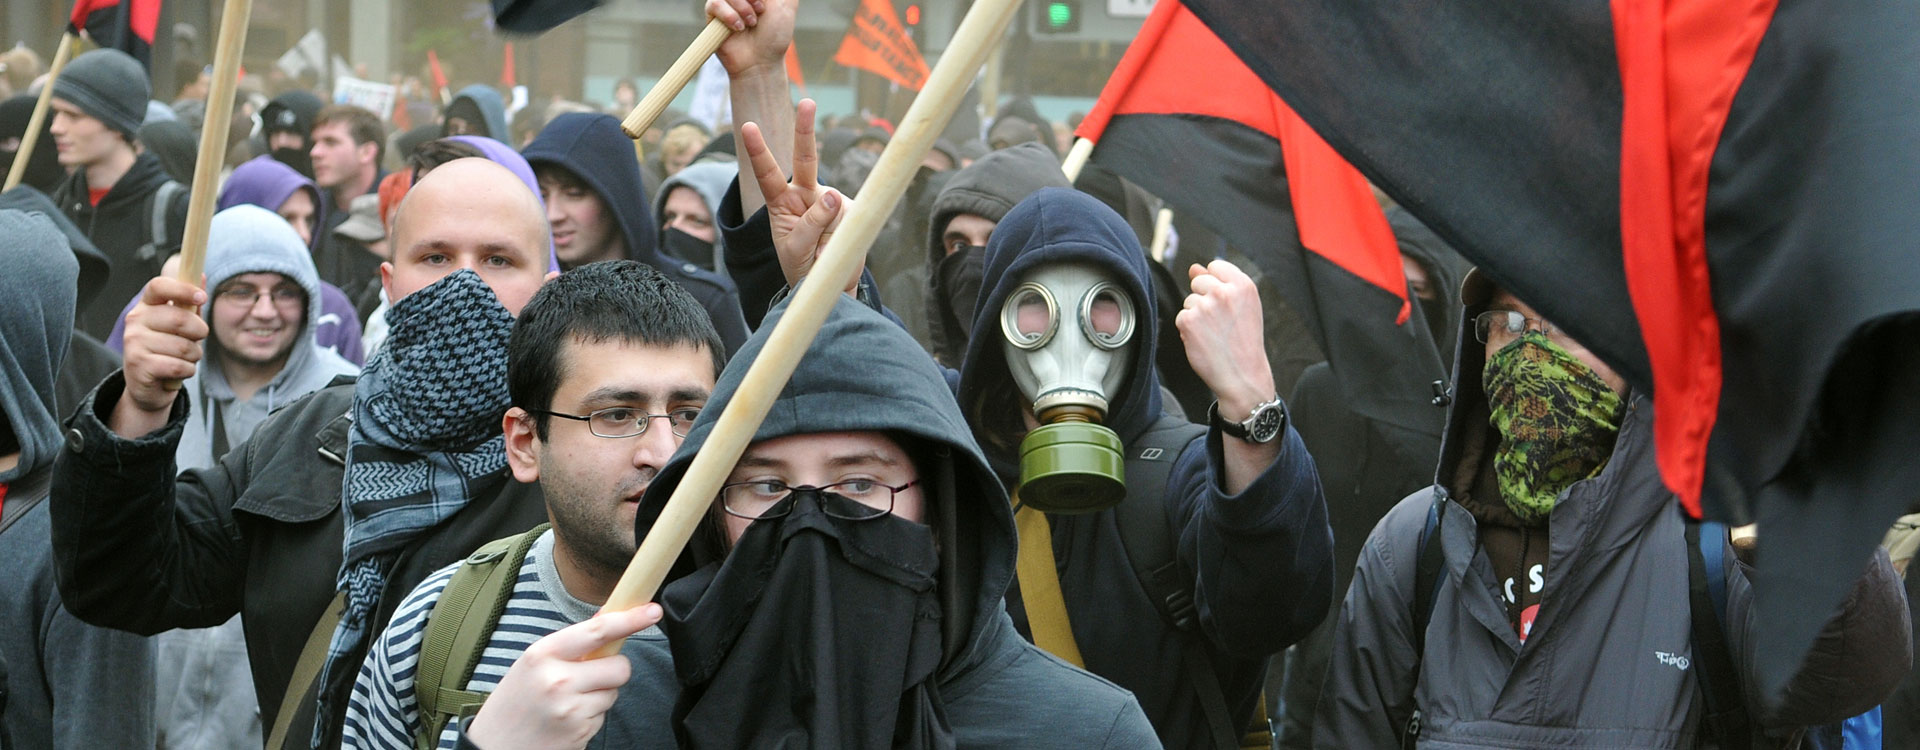 angry mob of protesters one wearing a gas mask